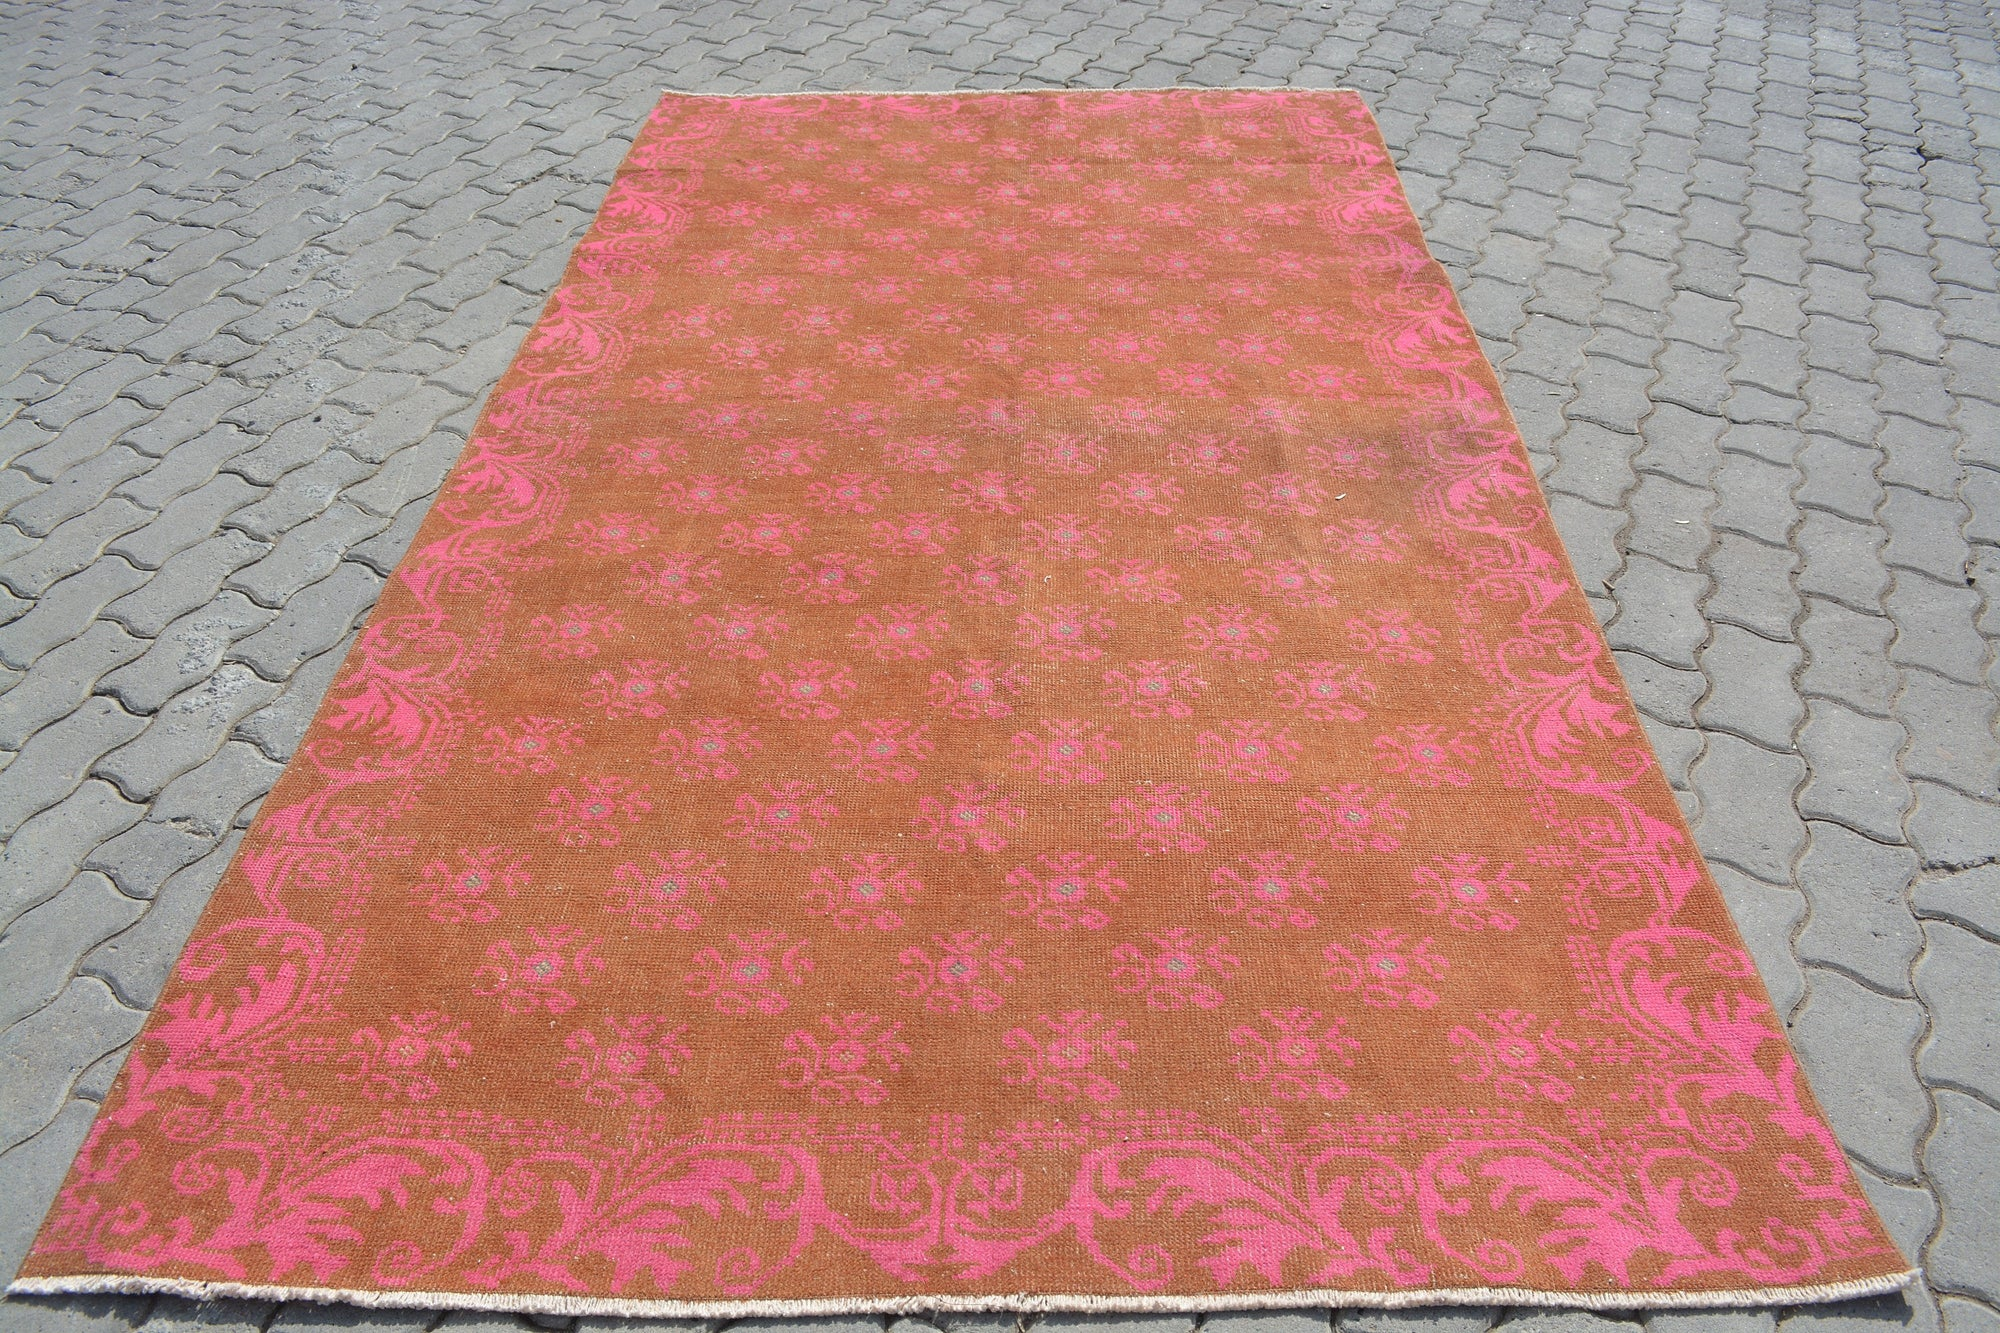 Rug 5x9,  Runner Rug, Orange Rug, Christmas Rug, Bathroom Rug,  Accent Rug, Mini Rug, Medallion Rug, 5x9 Rug, Pink Rug, 5.1x9.5 Ft AG320